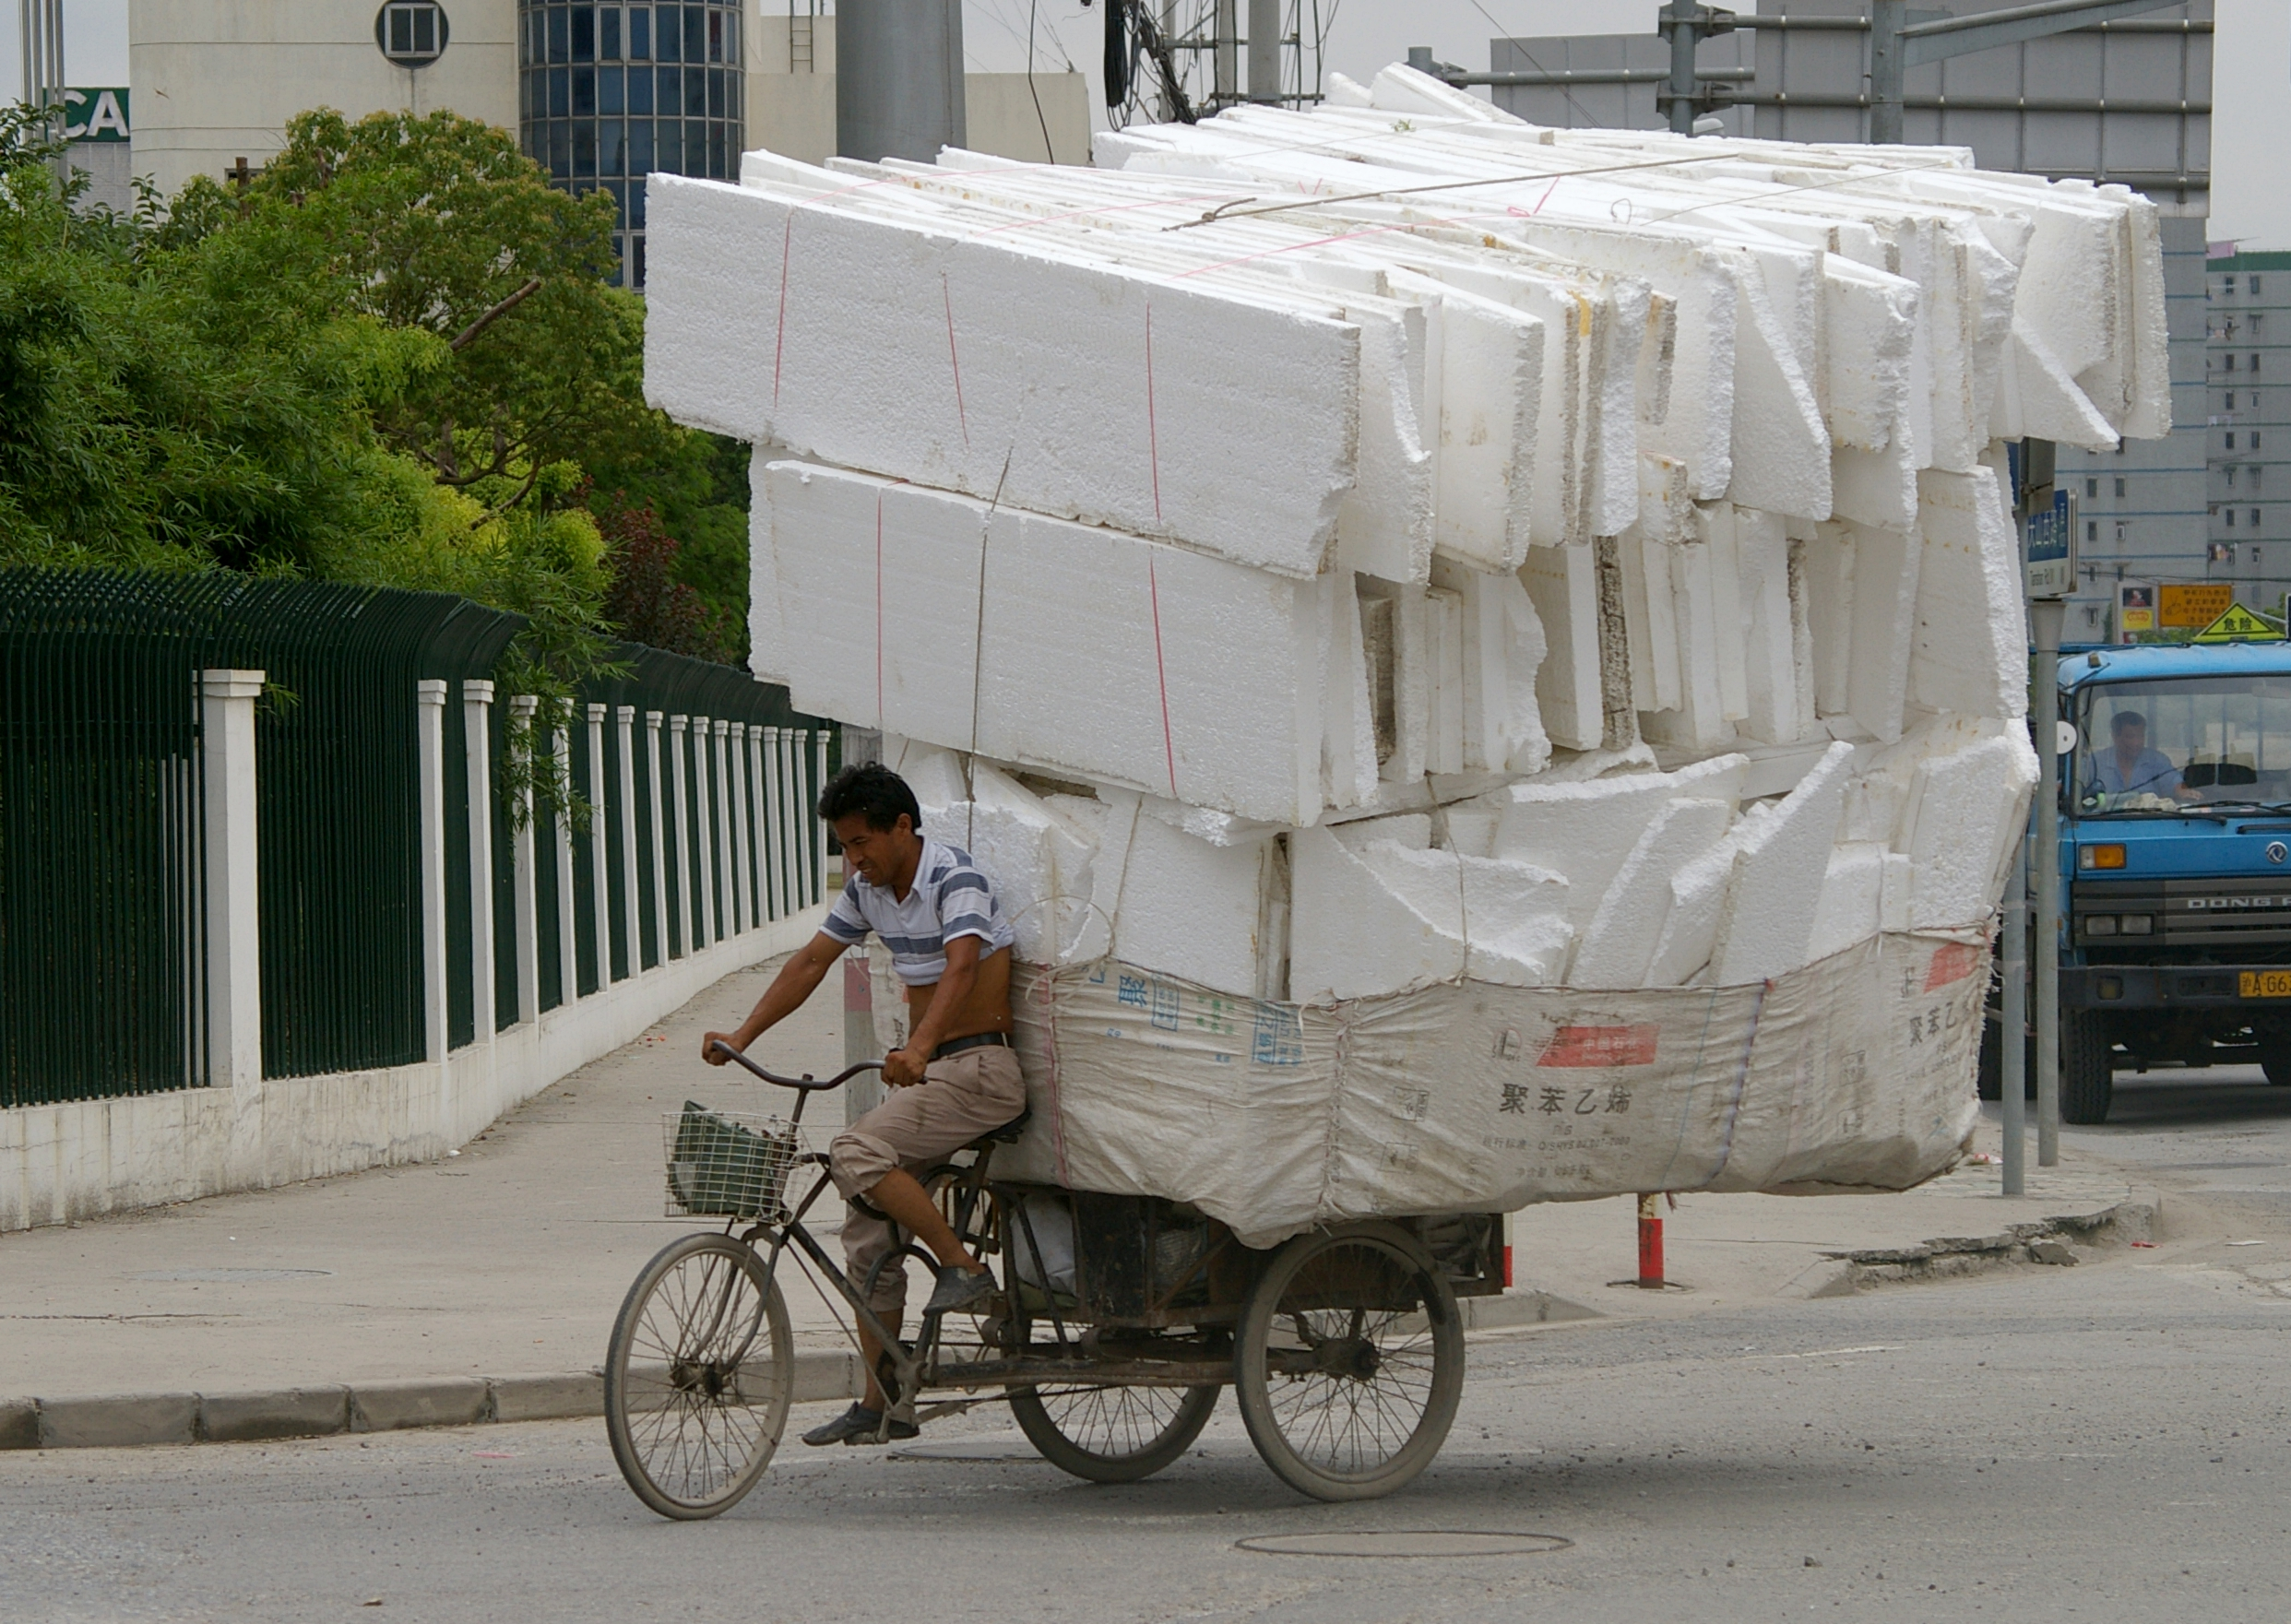 File:20080804 freight bicycle Shanghai 2383.jpg